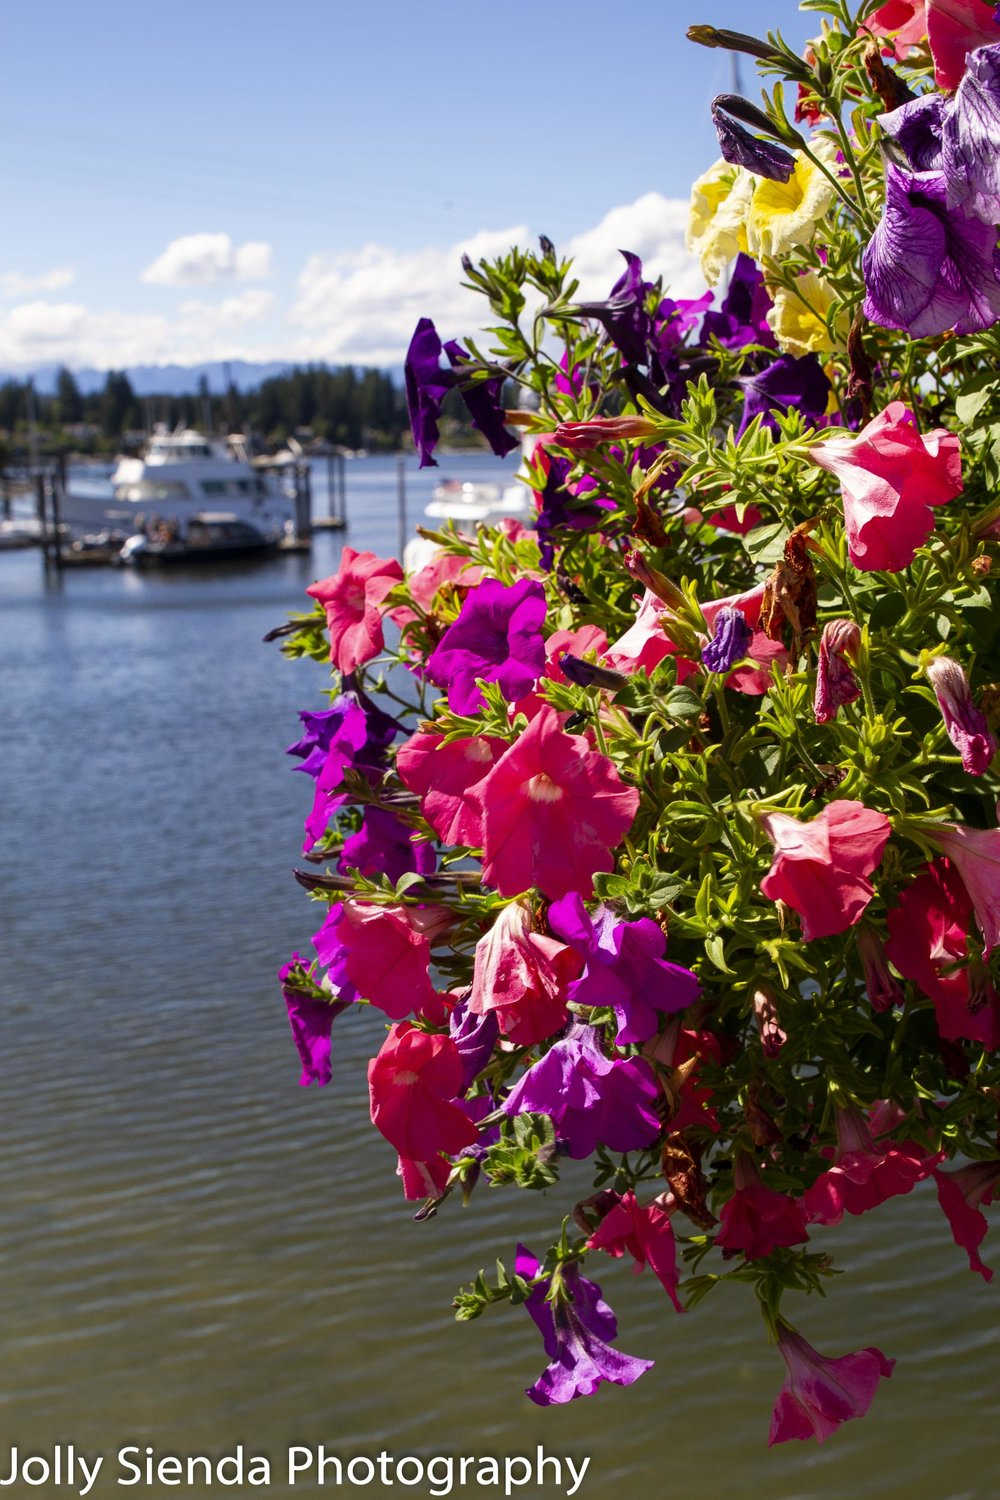 Hanging Petunia flower basket at the seashore